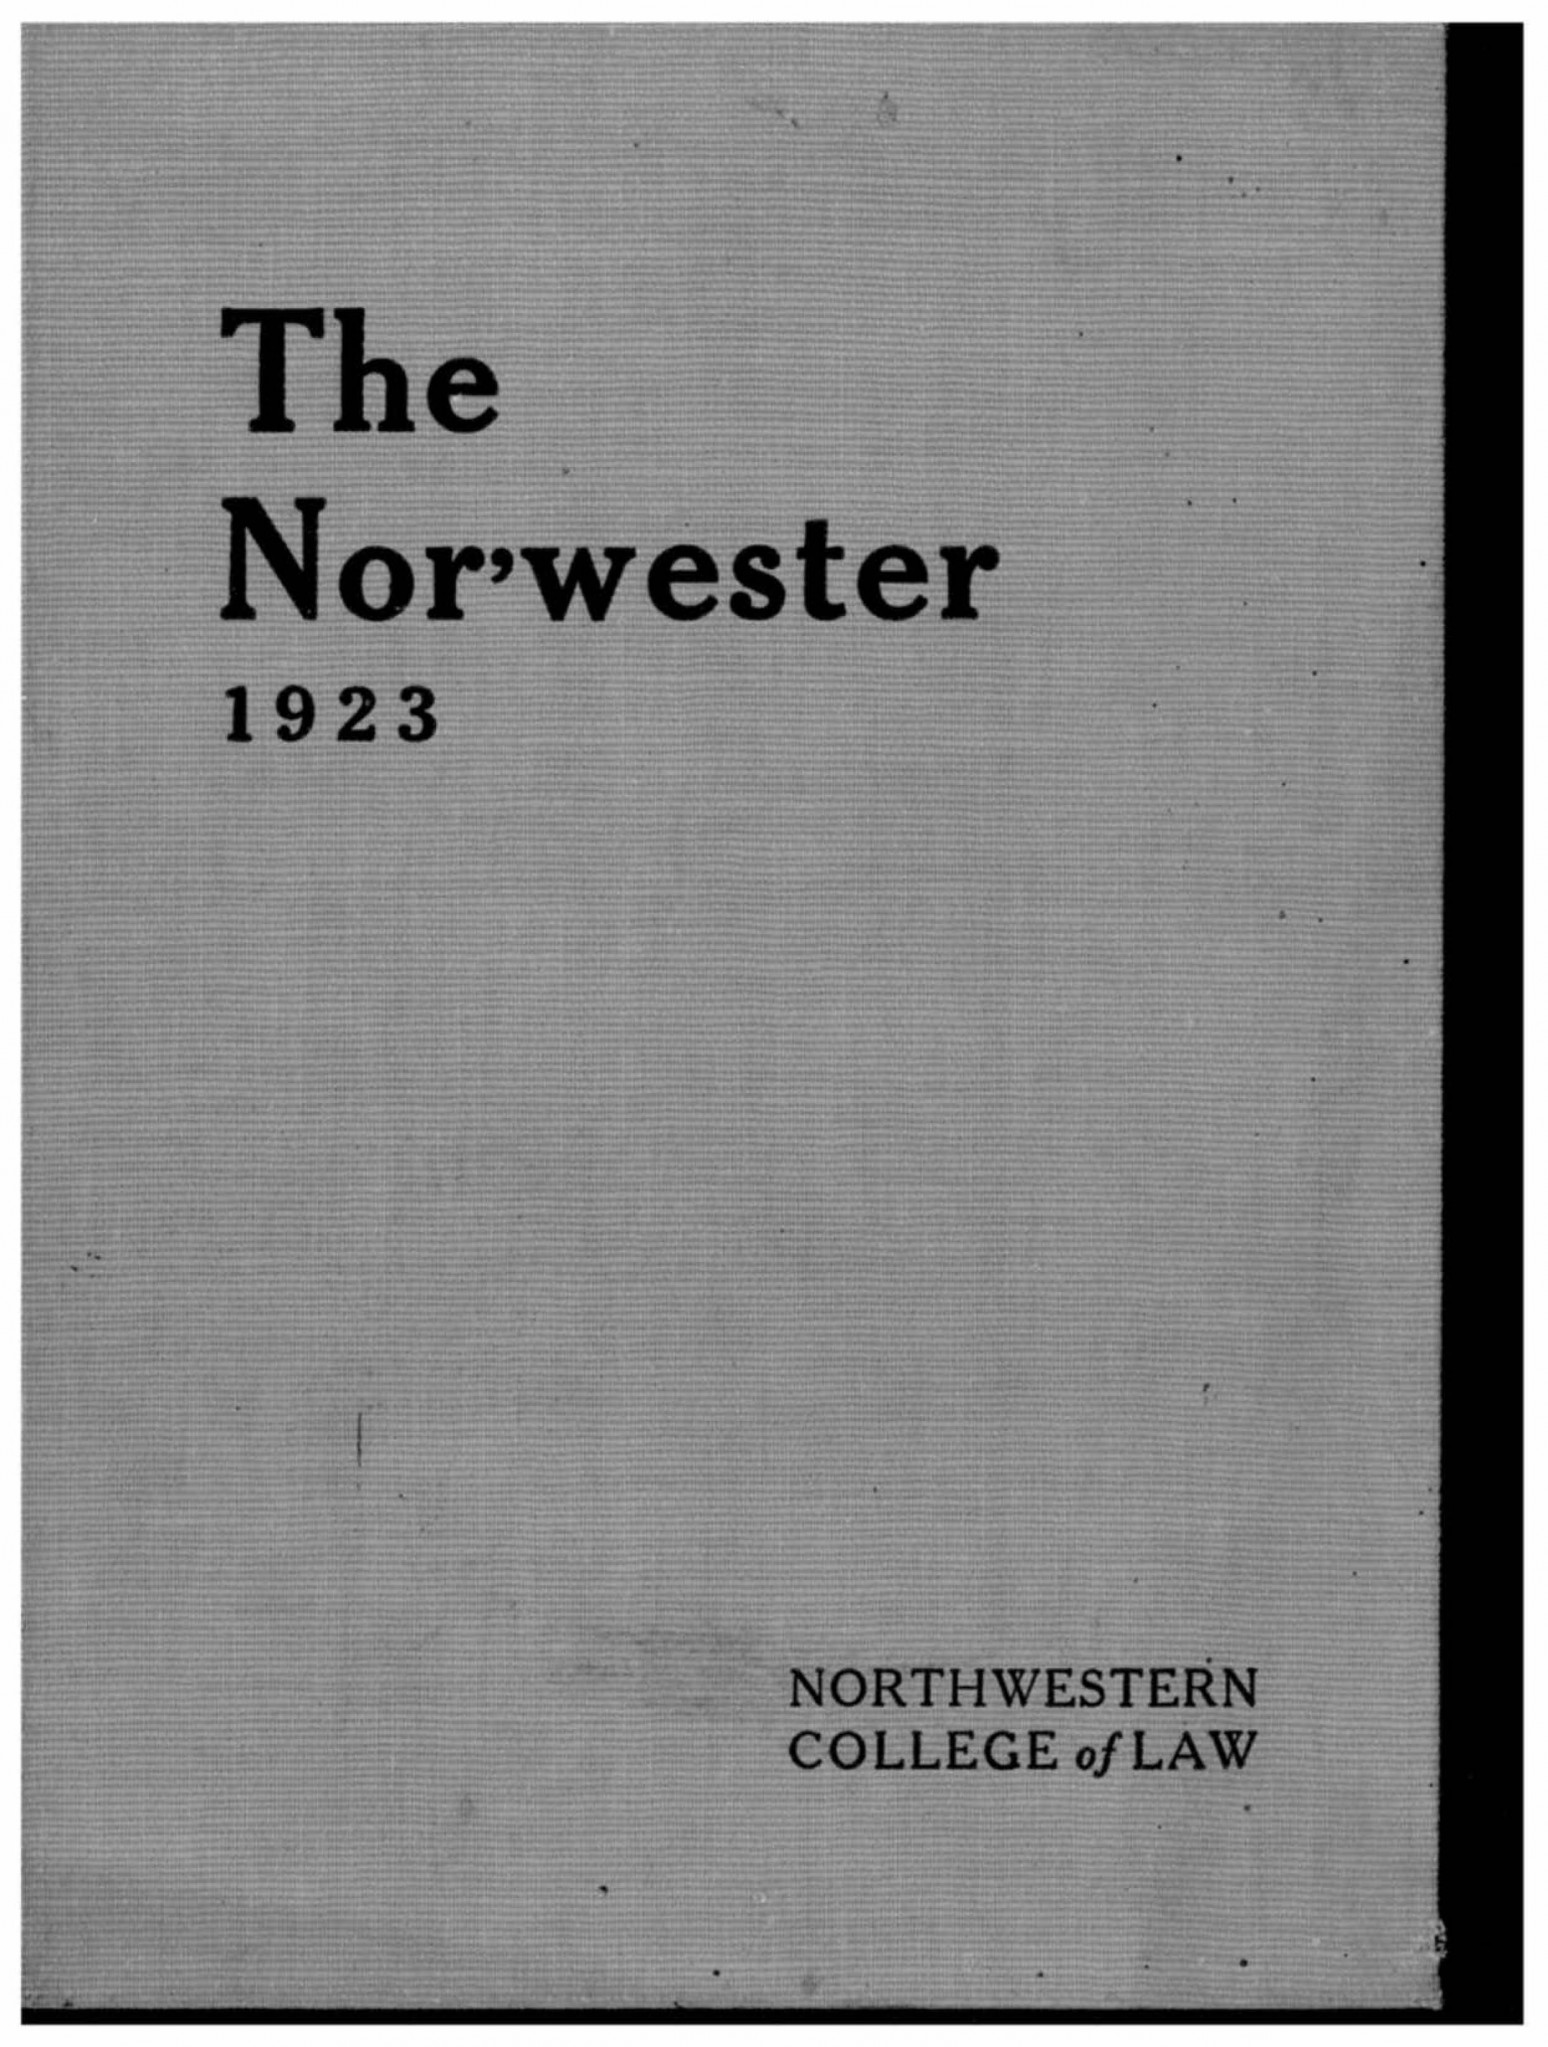 Cover of The Nor'wester 1923